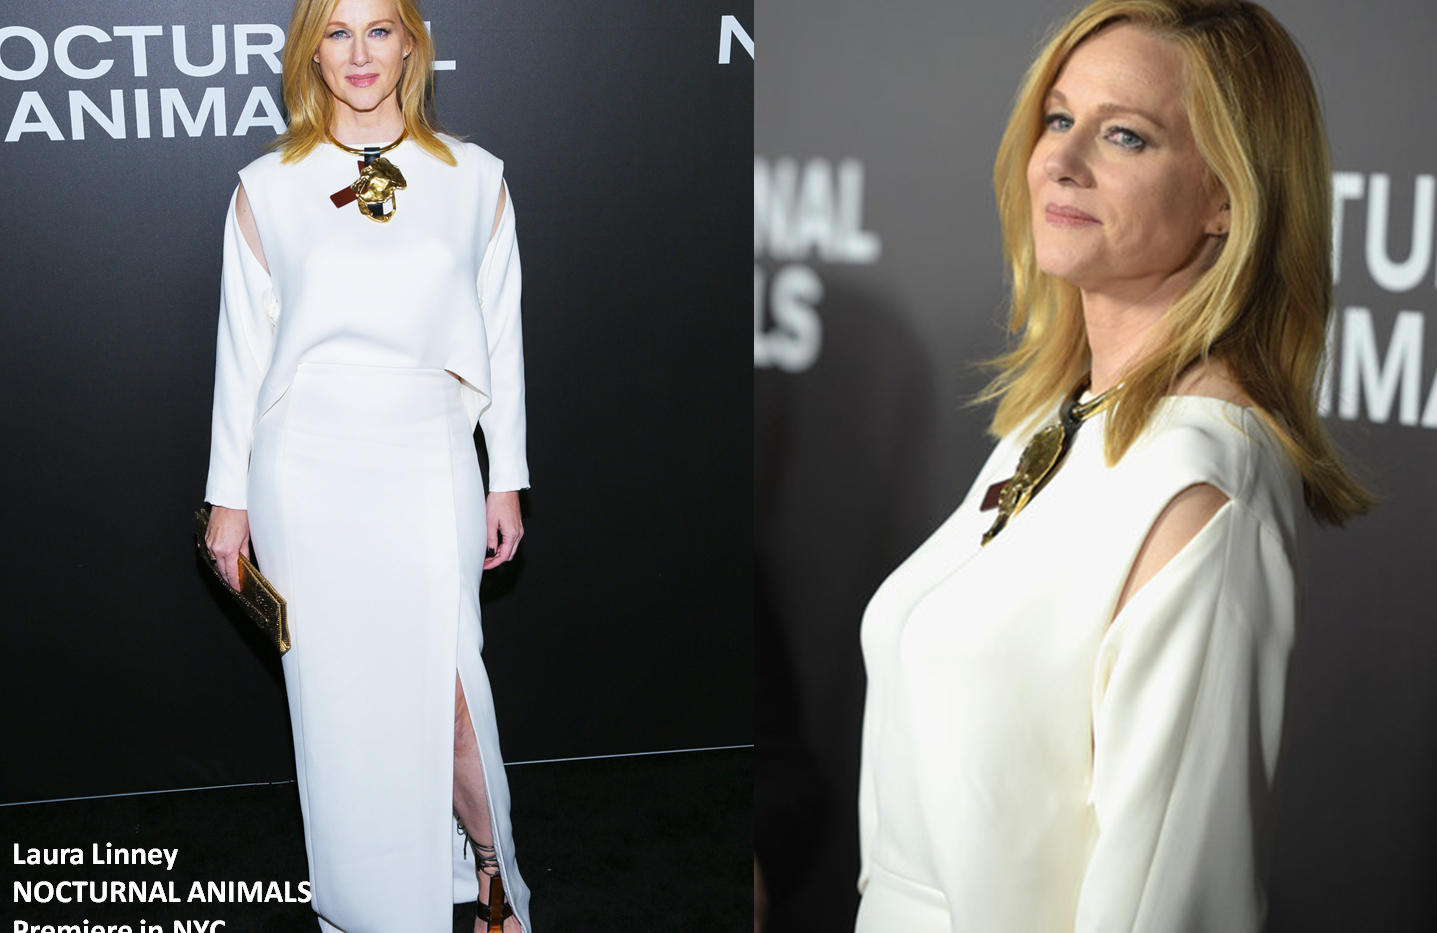 "Laura Linney at ""Nocturnal Animals"" premiere in NewYork wearing white gown - Project for TOM FORD - pattern making - dressmaking - fitting / tailoring - managing - garment technology consult"